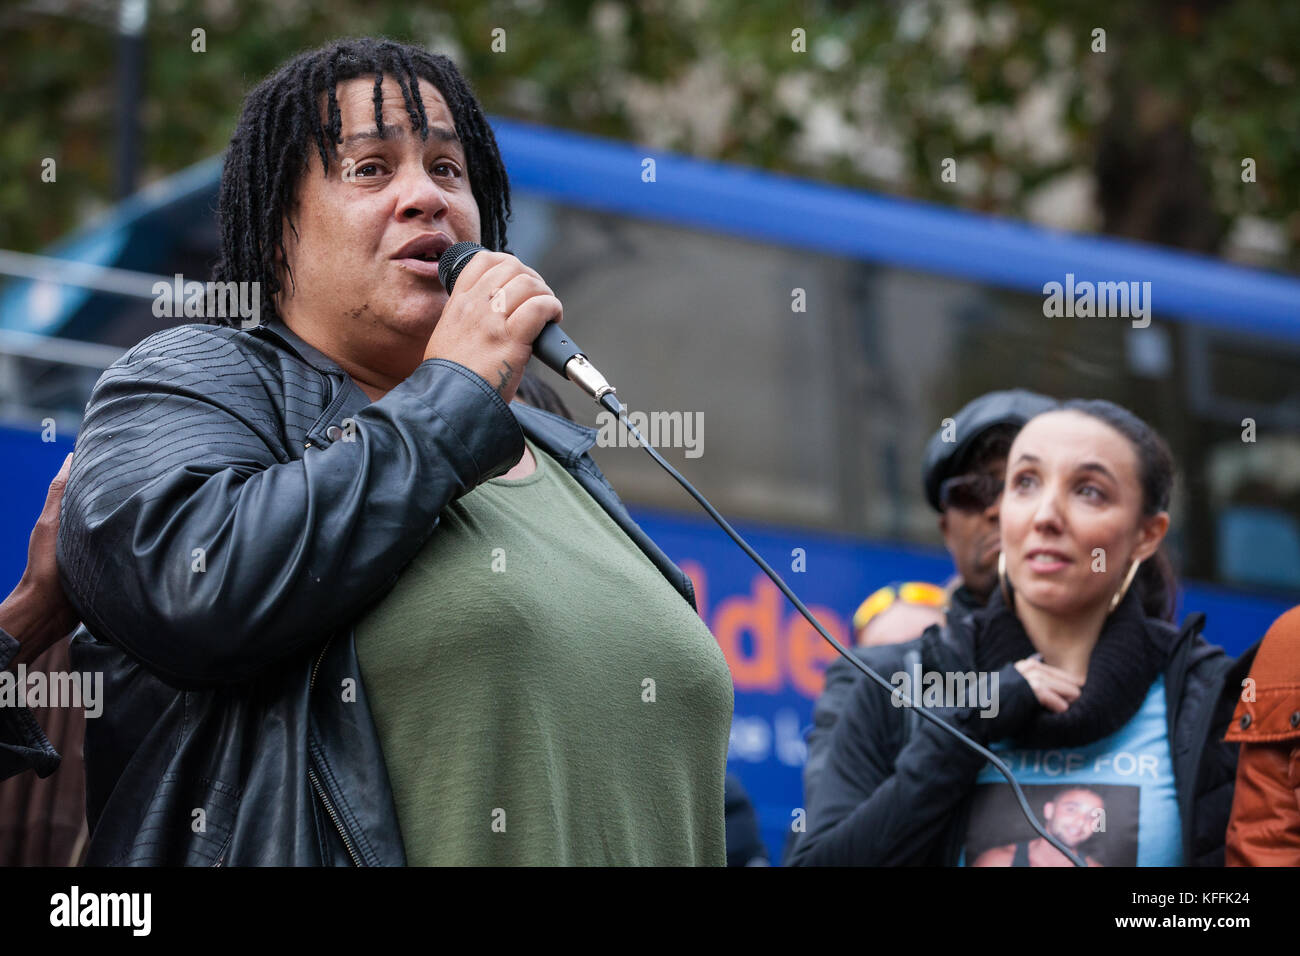 London, UK. 28th October, 2017. Karla Mohammed, mother of Mzee Mohammed, addresses campaigners from the United Families Stock Photo